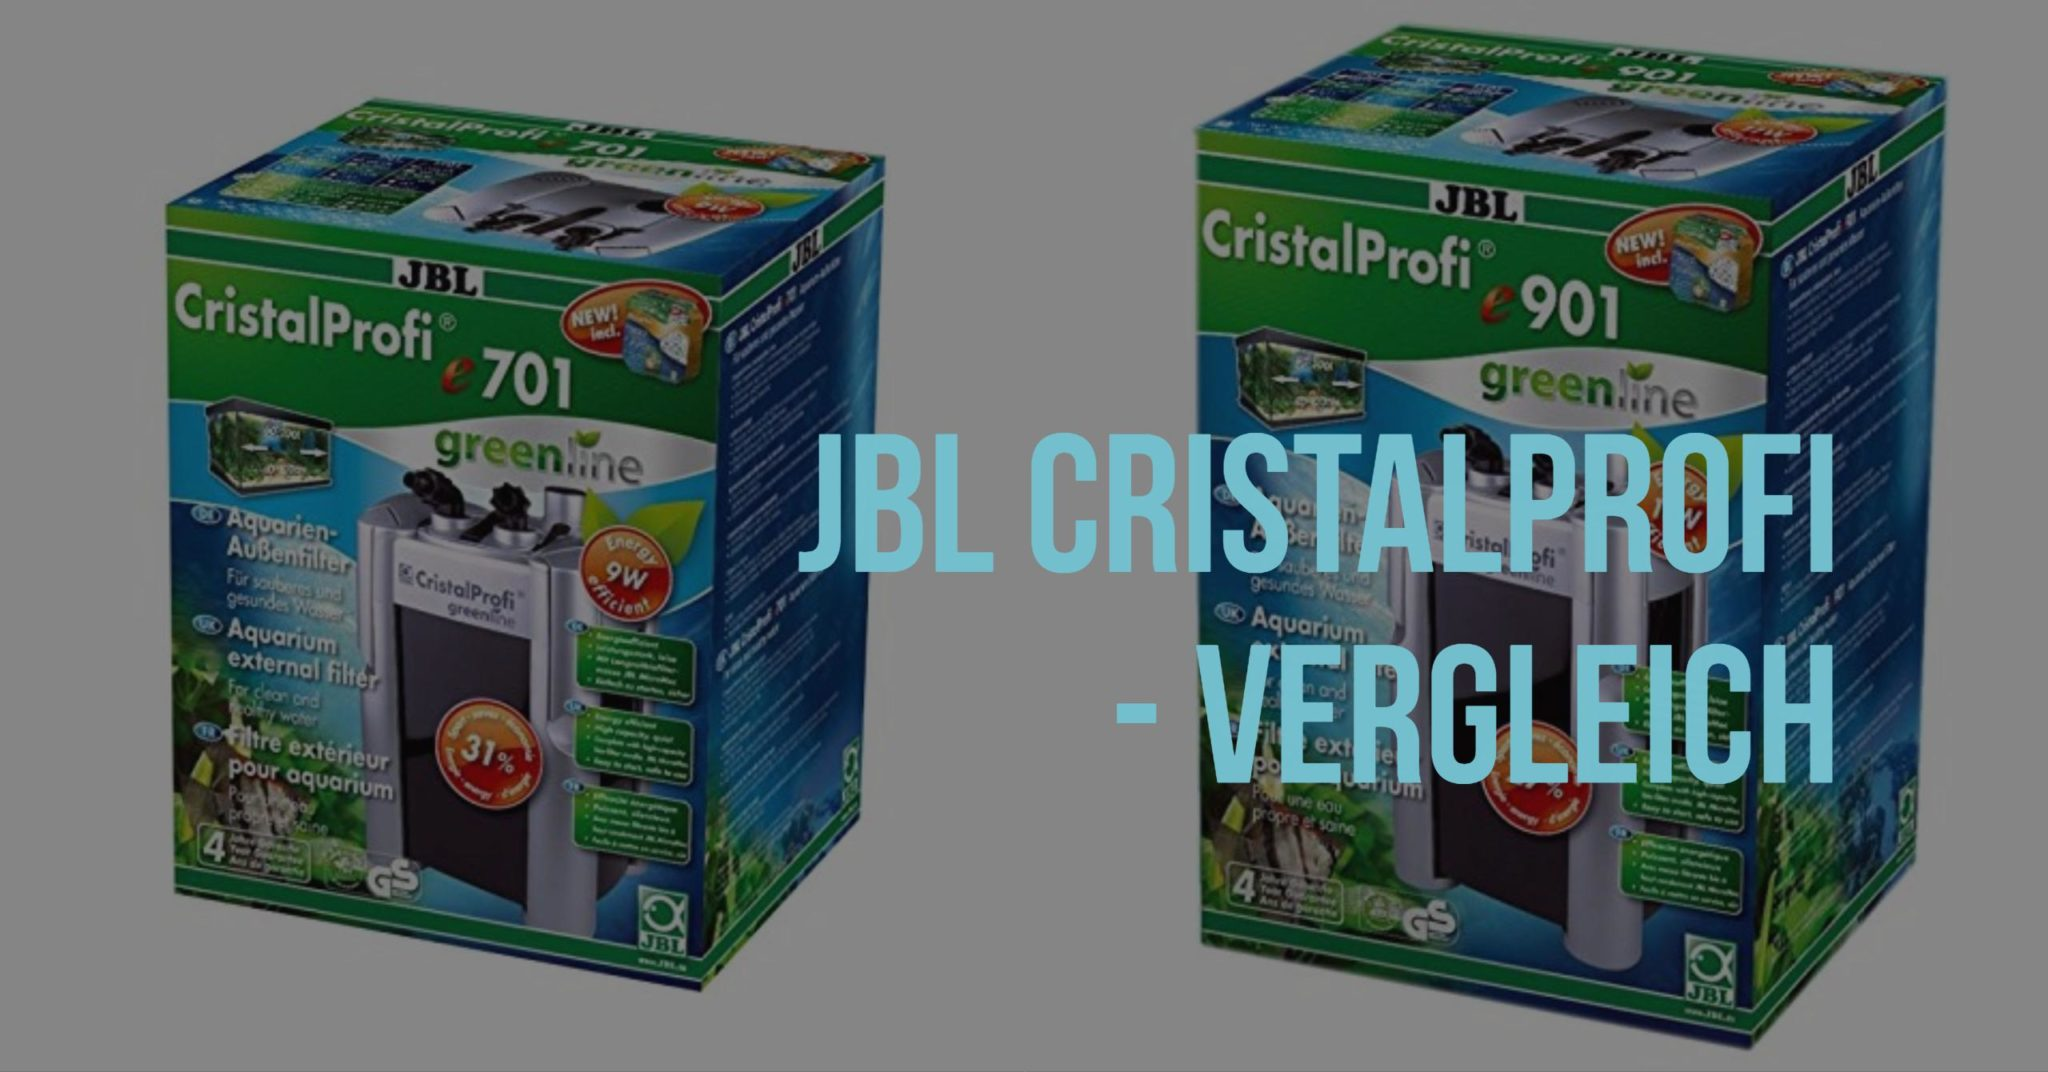 JBL Cristalprofi Aquarium Filter